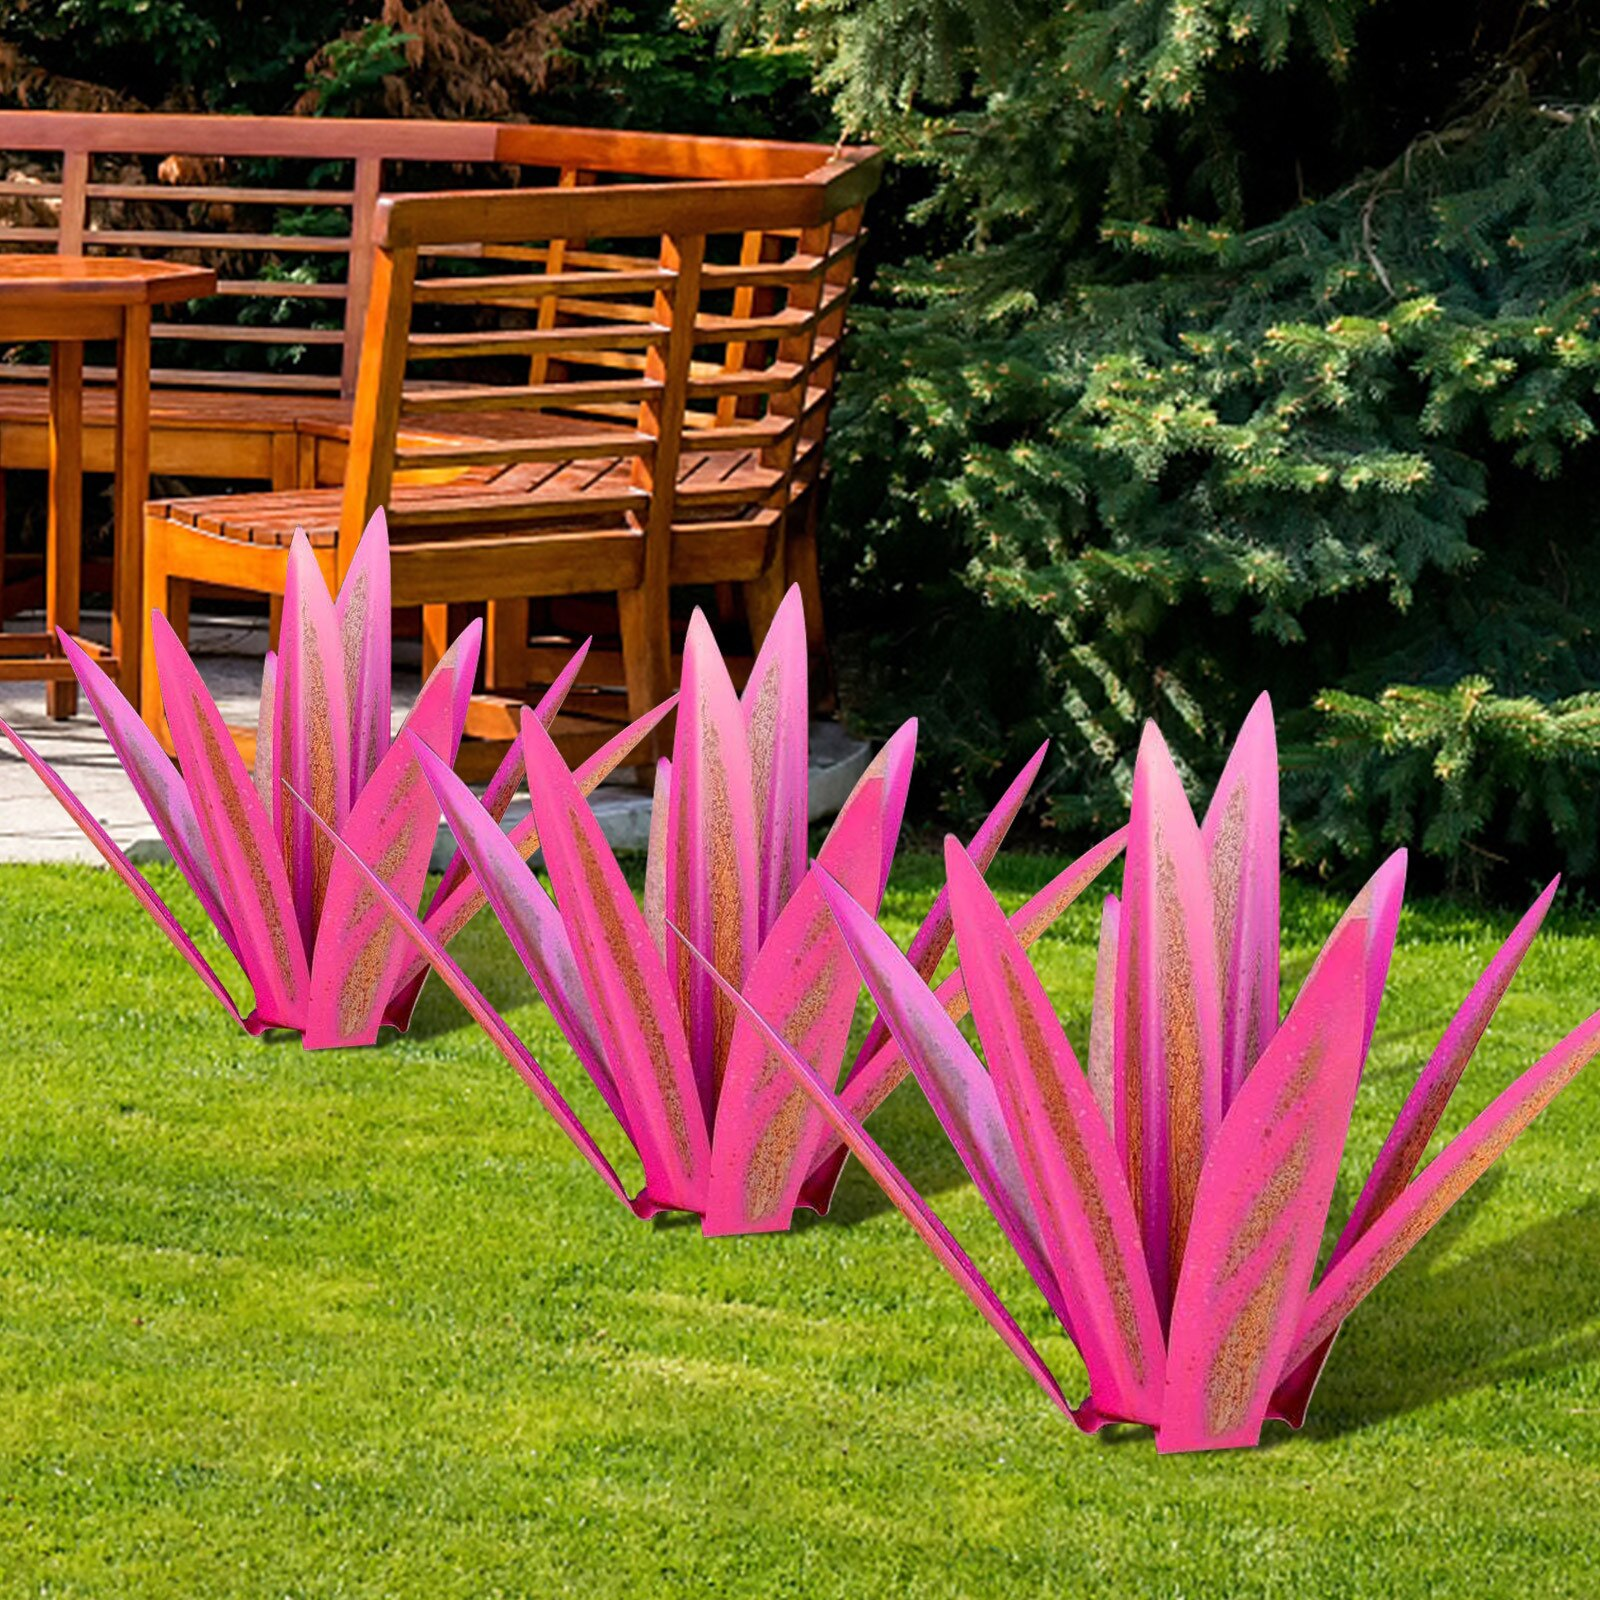 🔥Hot Sales Red Tequila Agave-Perfect for Garden🔥